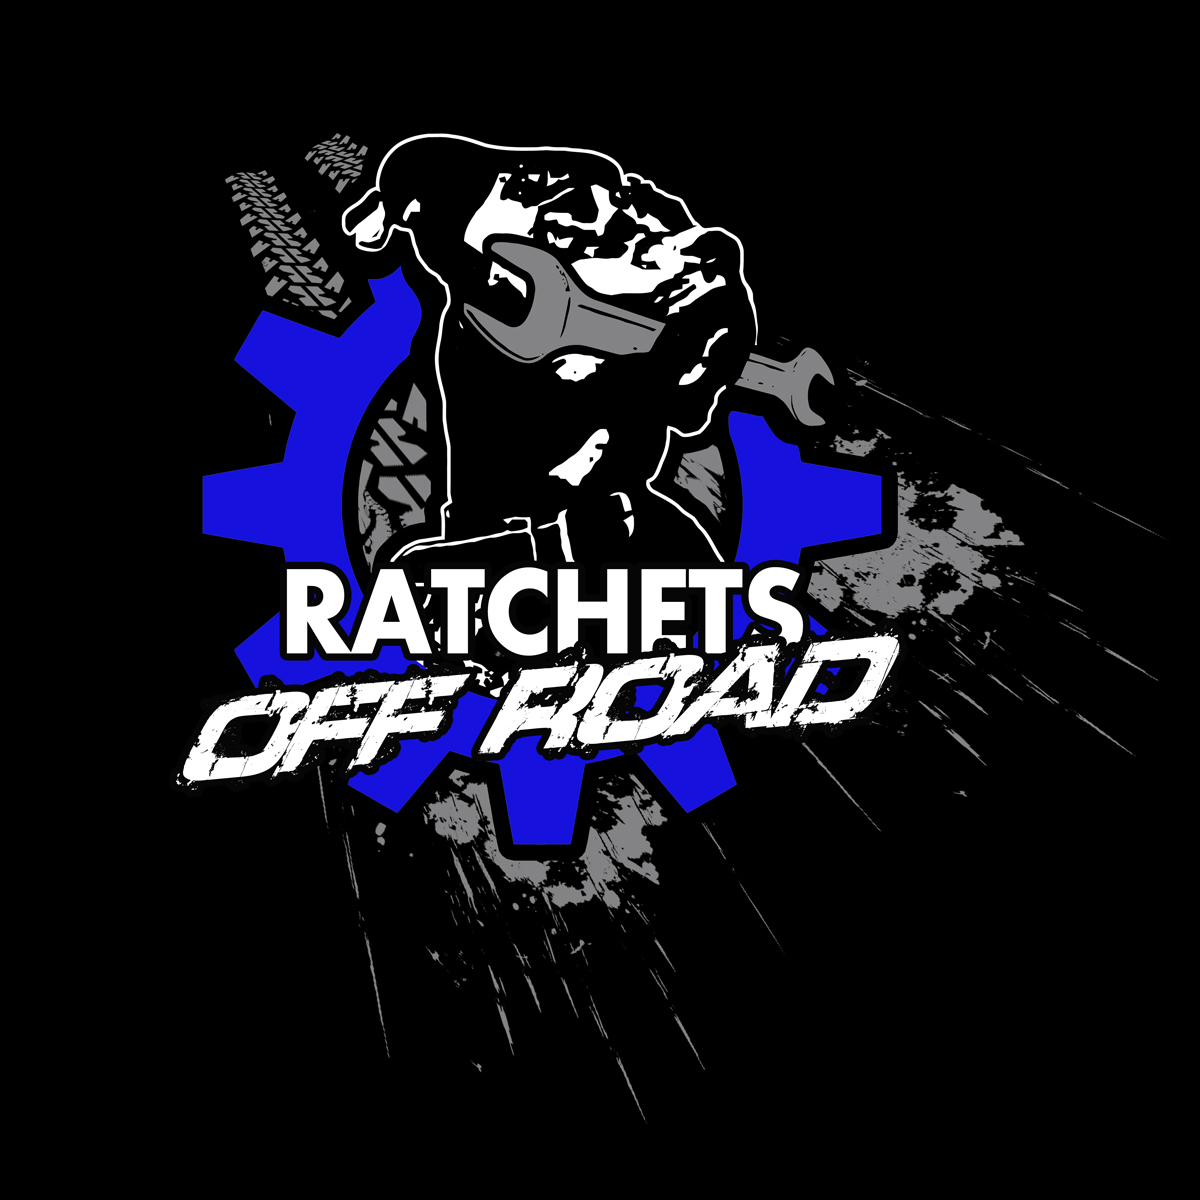 Ratchets Offroad Store Off Road Parts, Jeep Accessories!